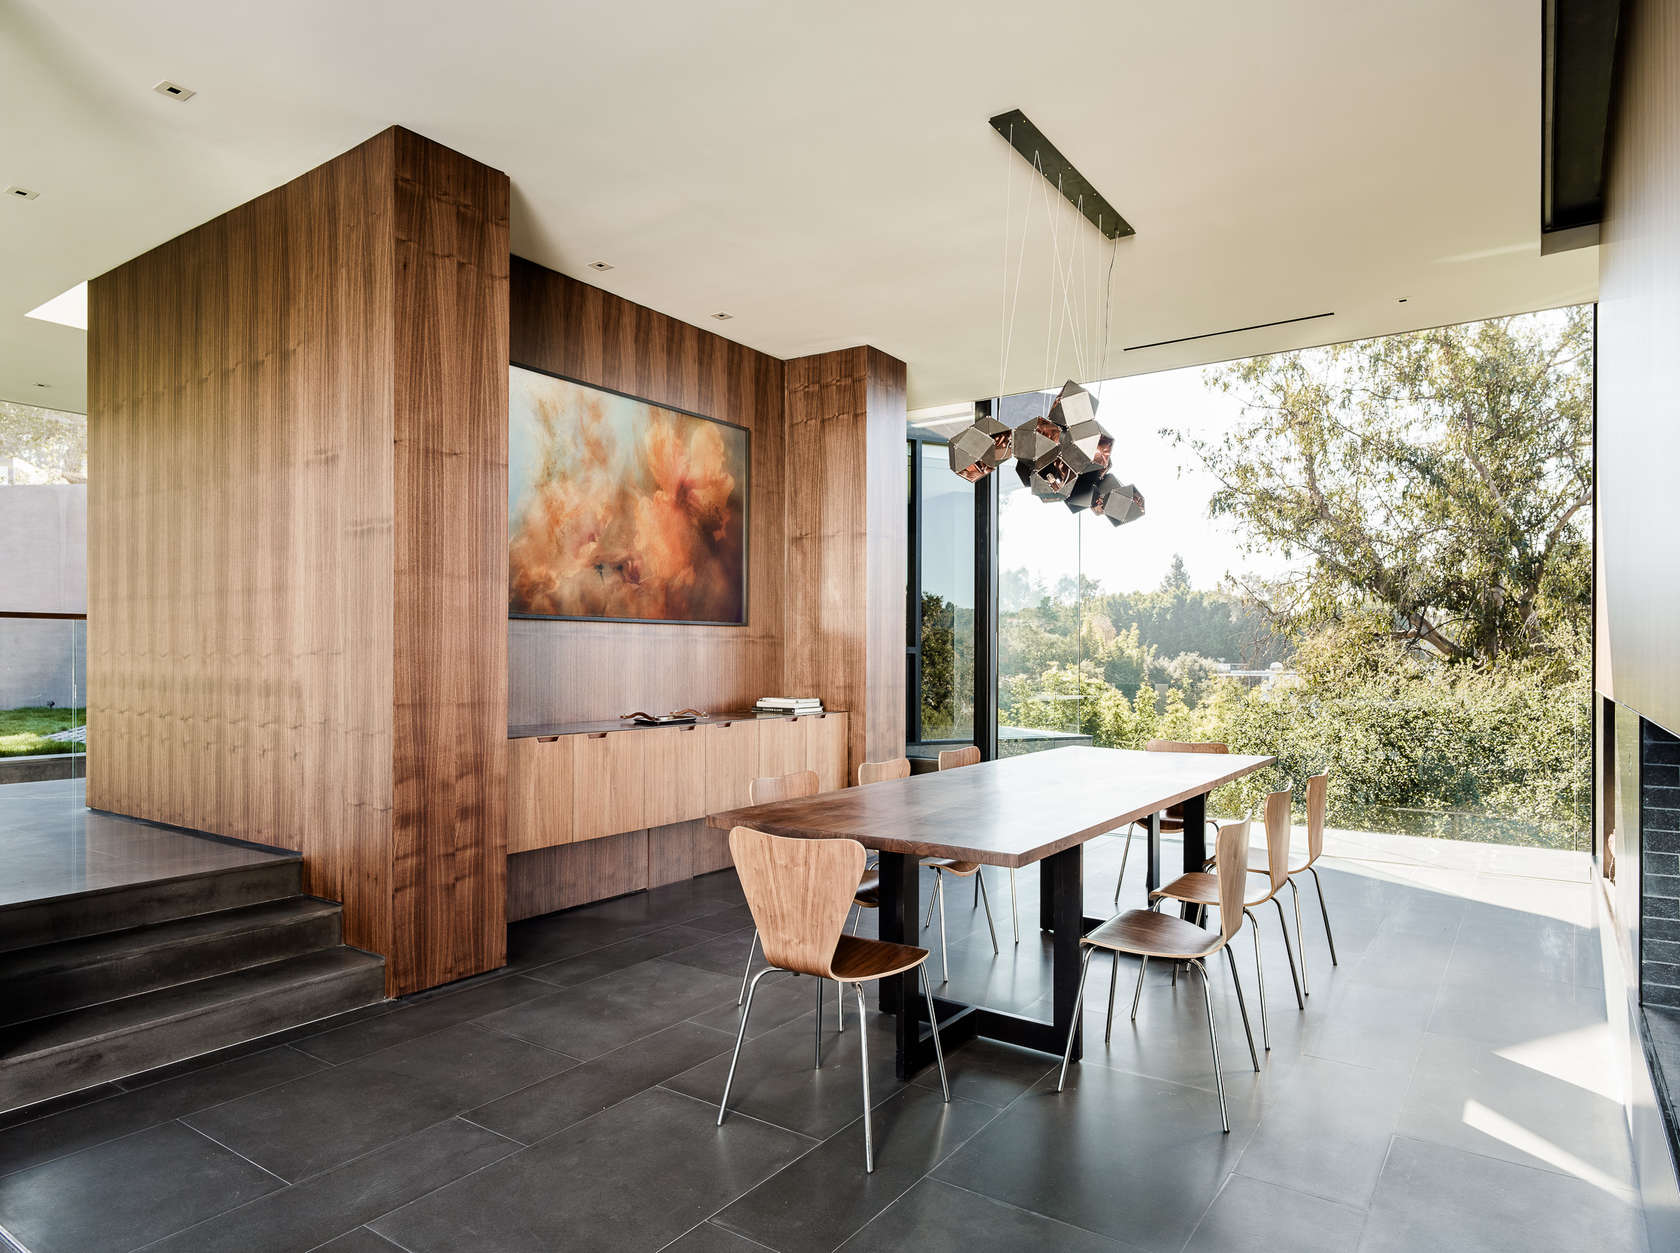 Slick Wood Paneling - An upside down beverly hills home with a minimalist exterior